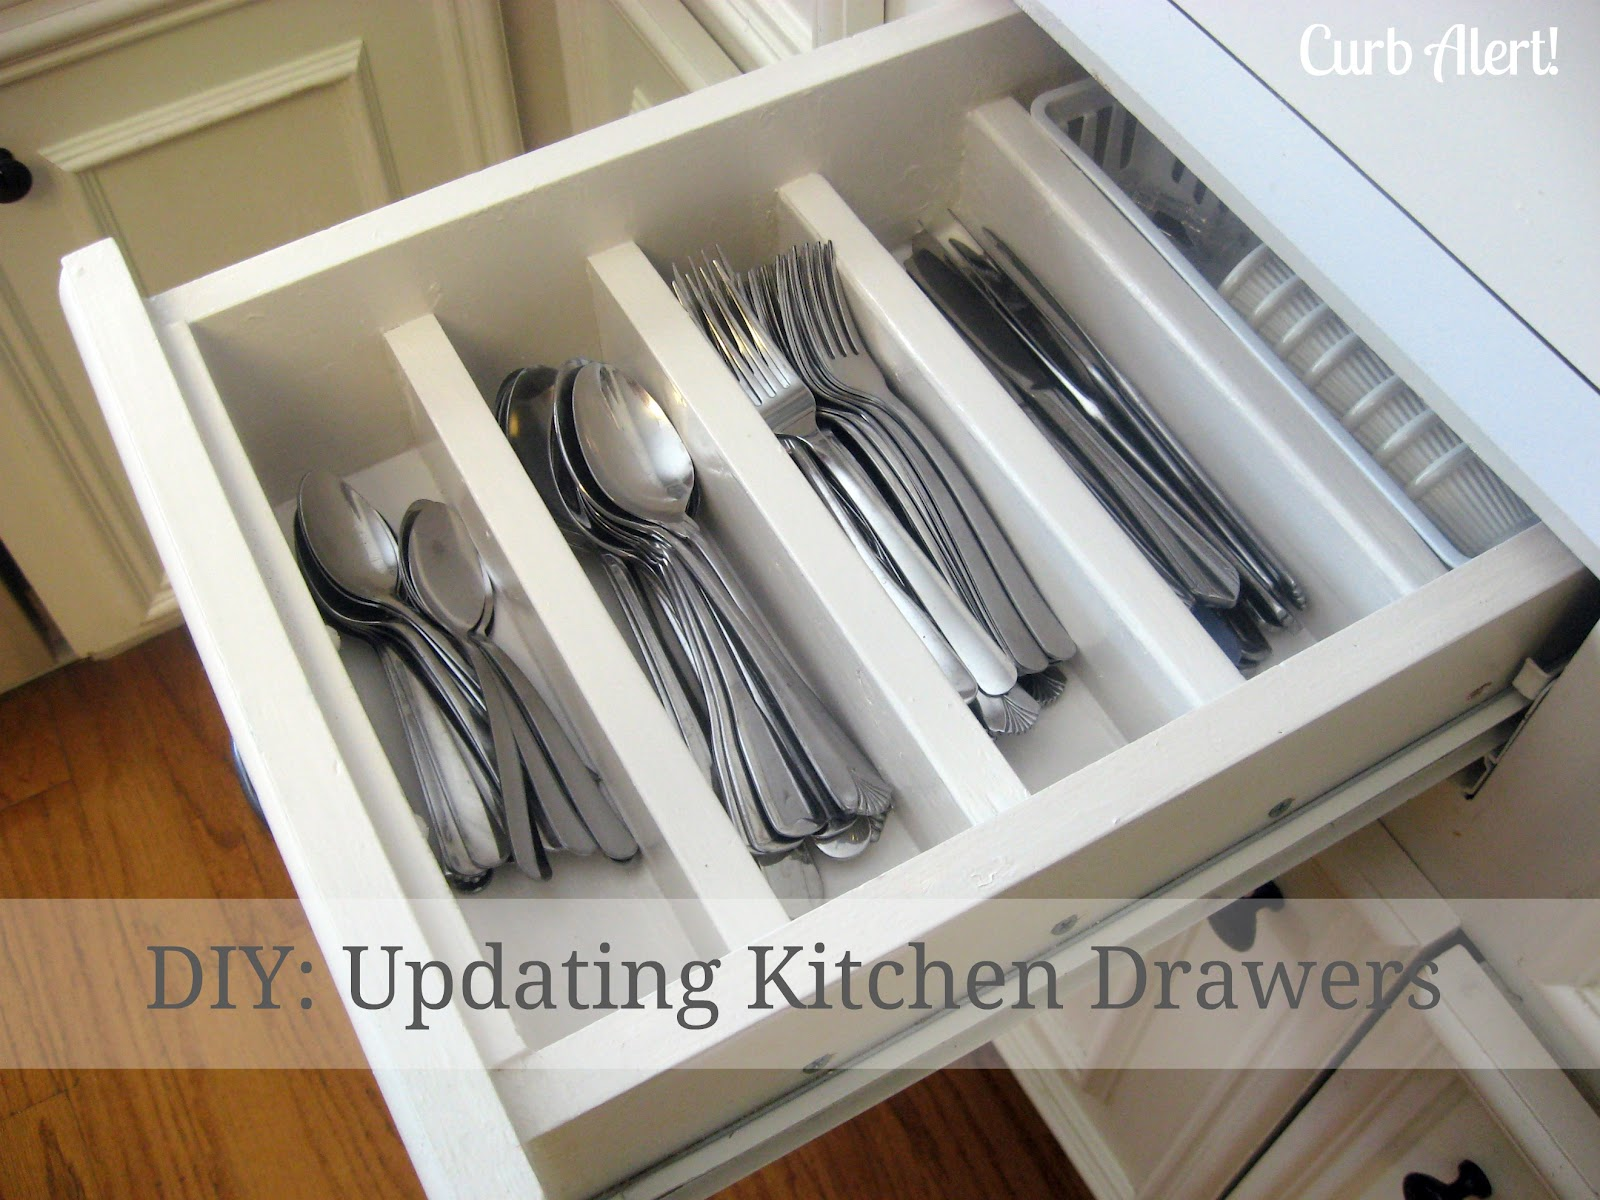 Kitchen Drawer Organizing Curb Alert Organizing Chaos Updating Kitchen Drawers